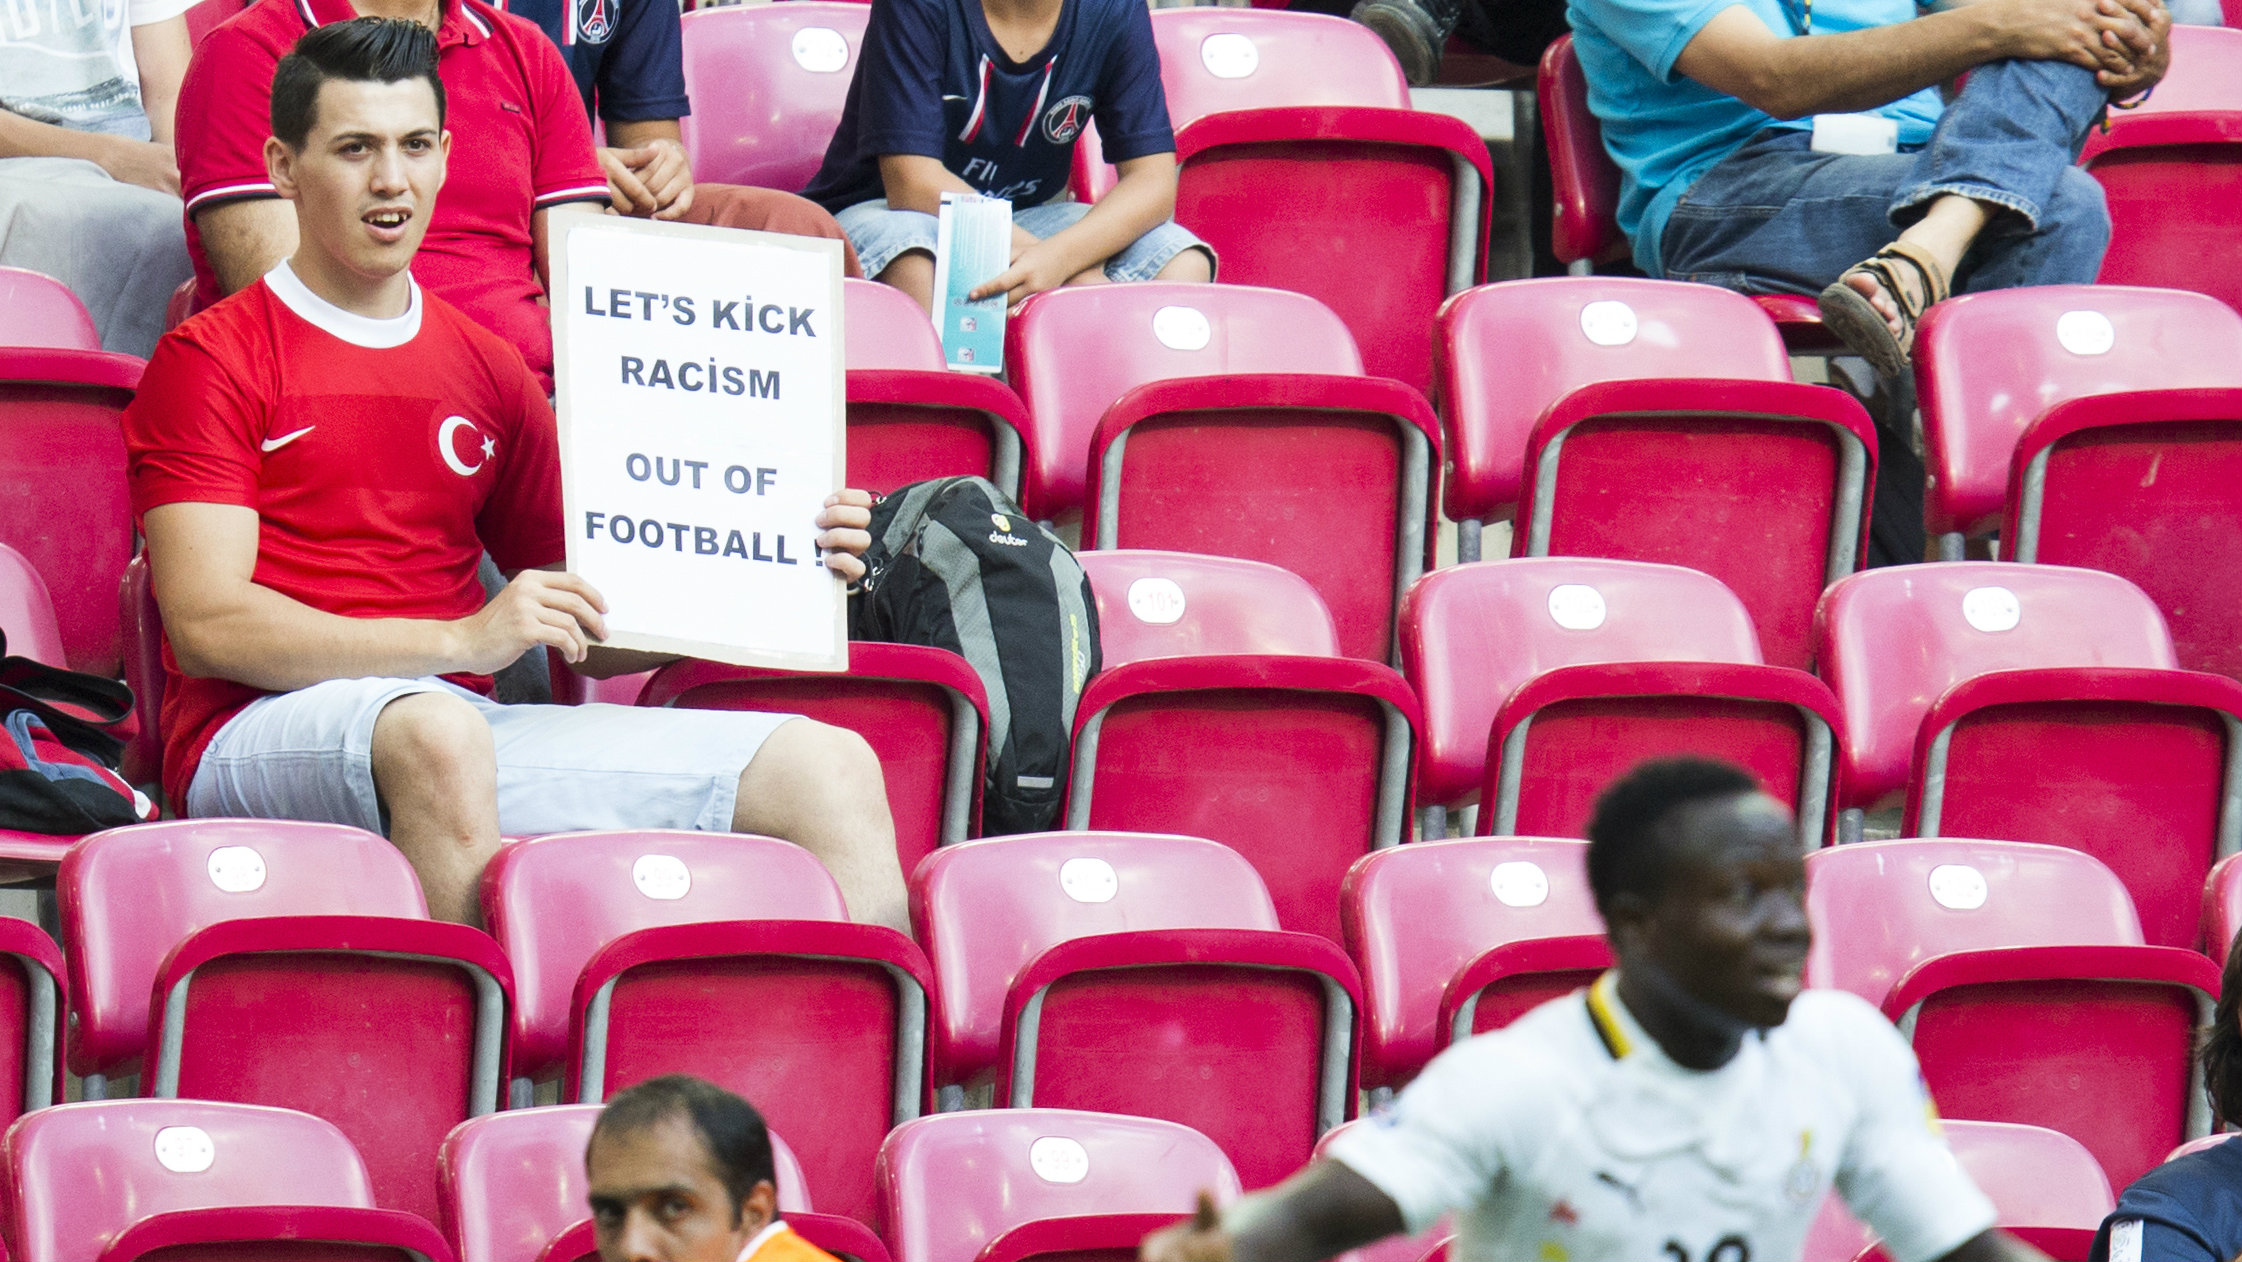 """A spectator displays a banner reading """"let's kick racism out of football"""" as Ghana's Moses Odjer, foreground right, gestures during the Under-20 World Cup Group A soccer match between France and Ghana, in Istanbul, Turkey, Friday, June 21, 2013. France won the match 3-1"""